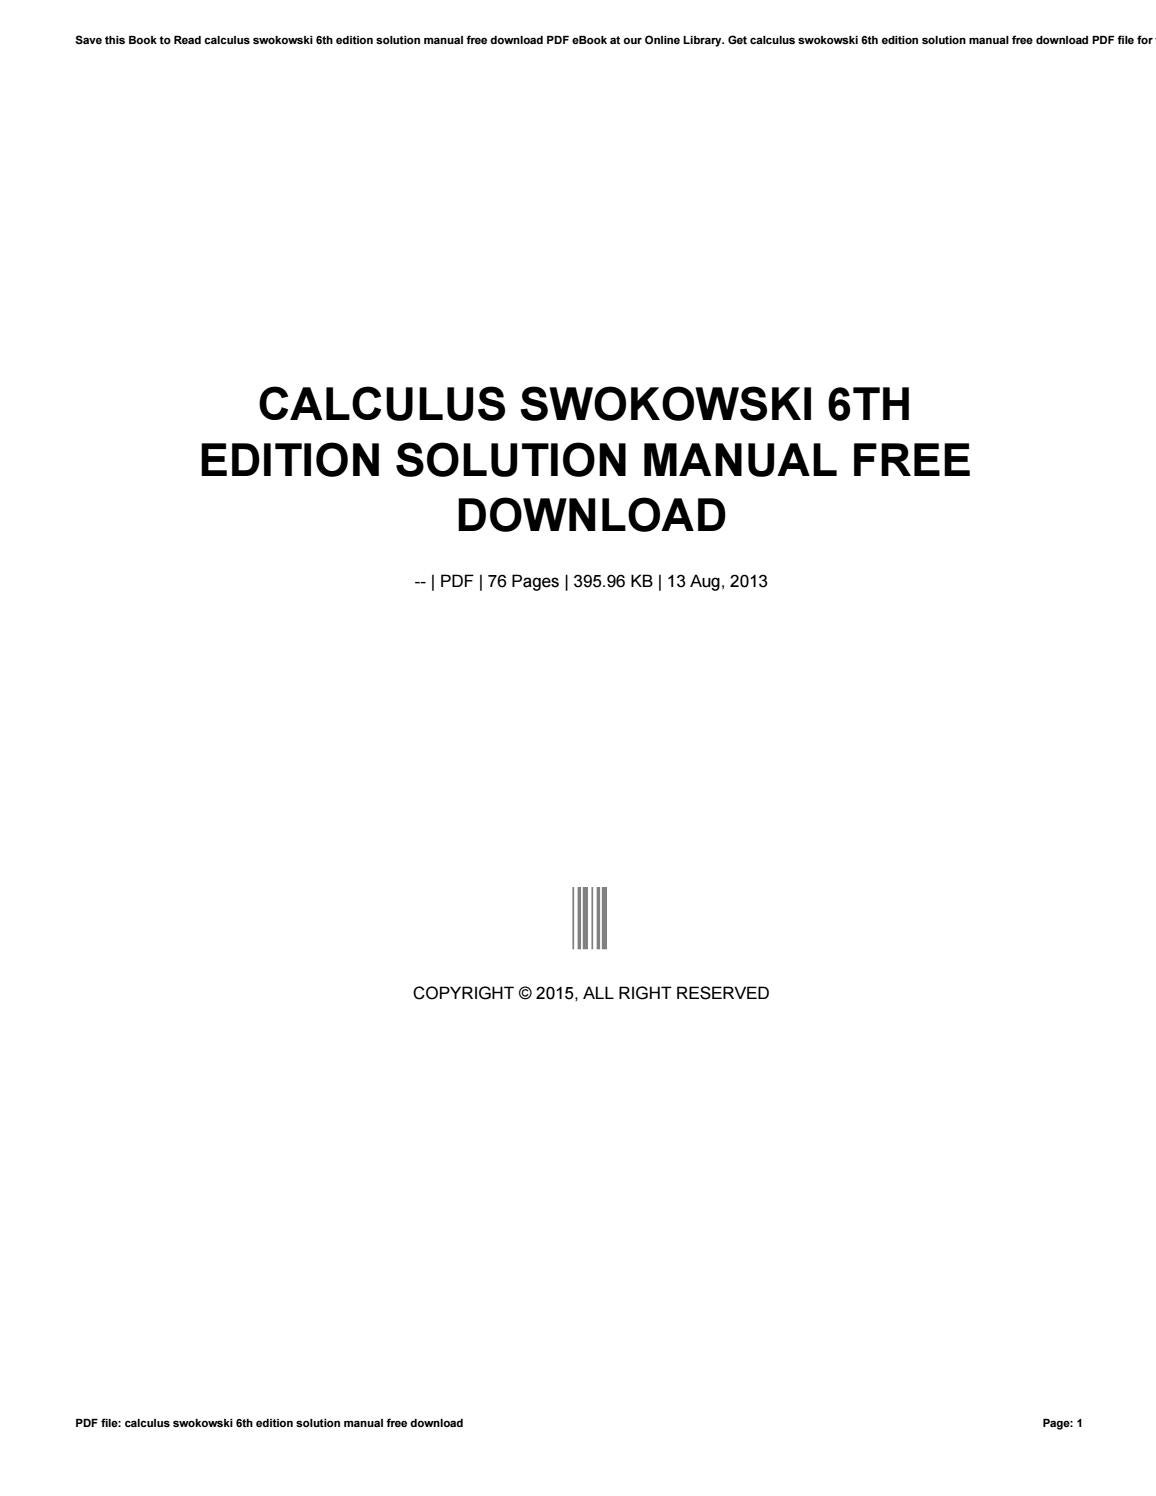 Calculus swokowski 6th edition solution manual free download by  uzzy74enduts - issuu